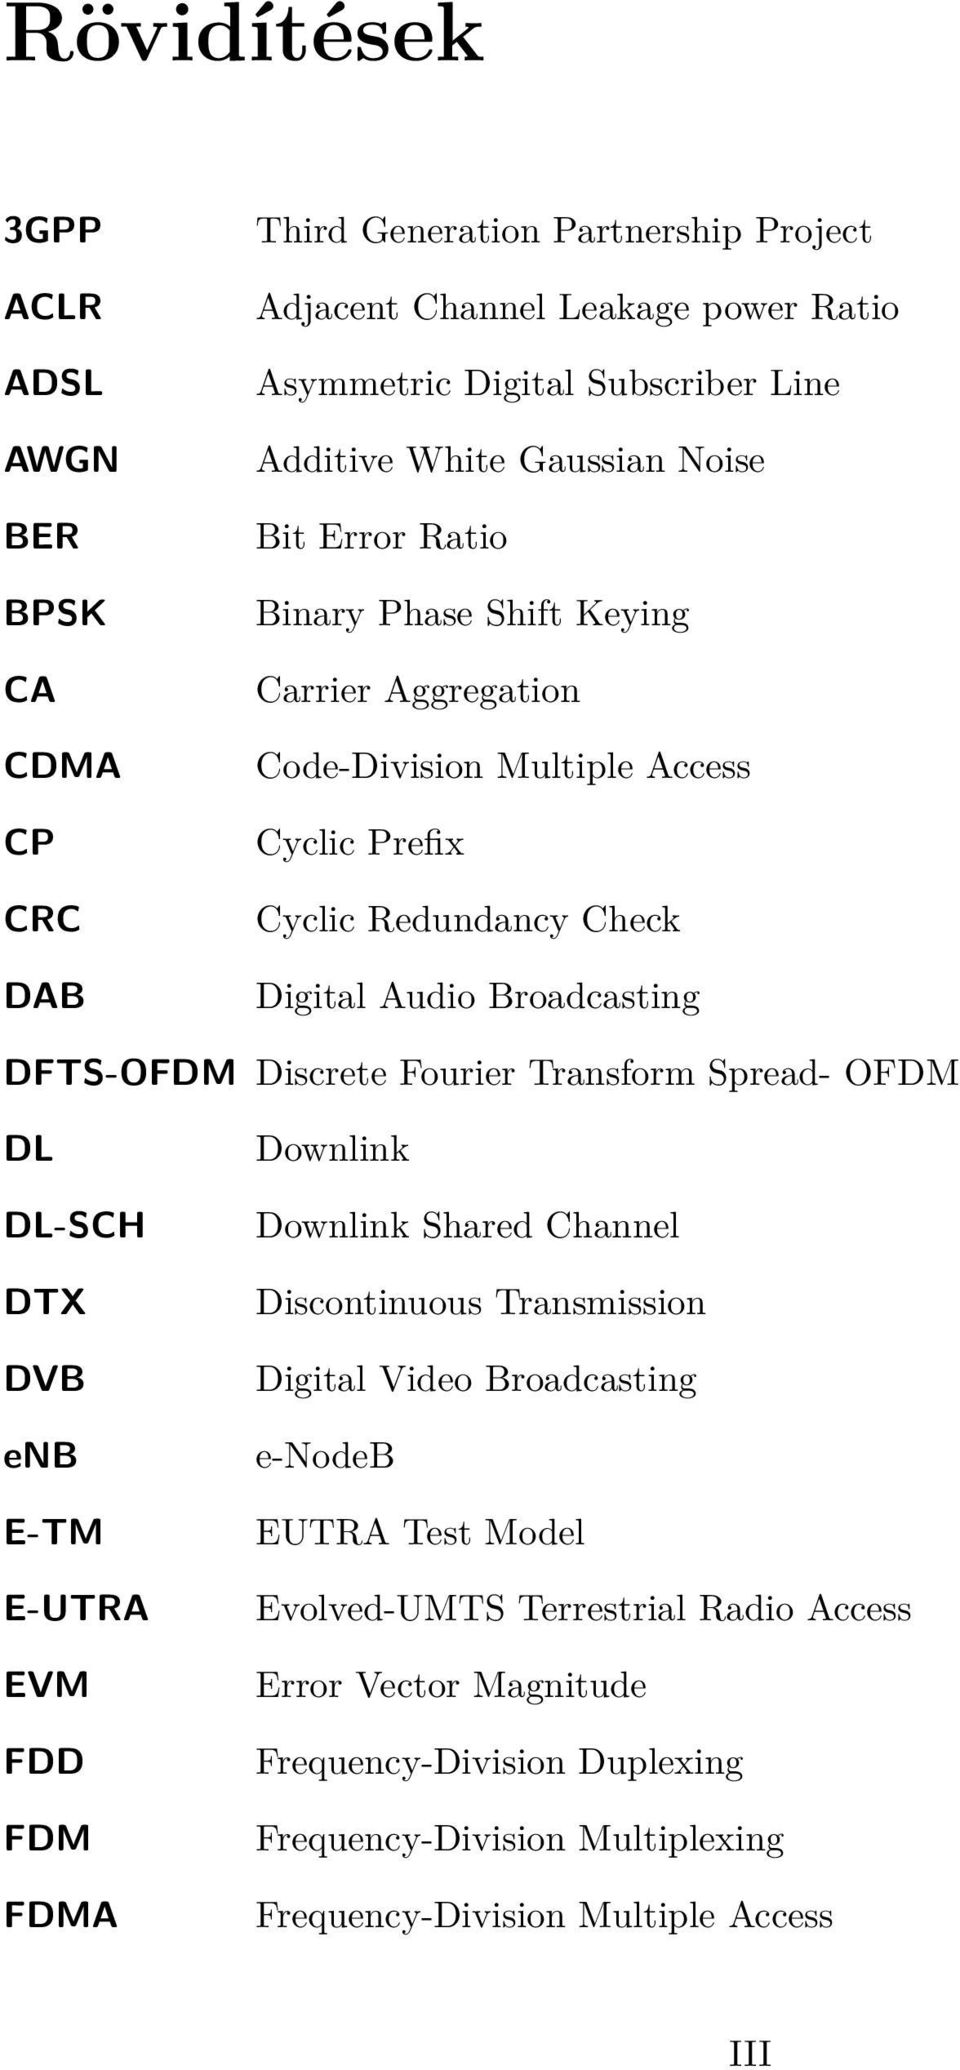 DFTS-OFDM Discrete Fourier Transform Spread- OFDM DL DL-SCH DTX DVB enb E-TM E-UTRA EVM FDD FDM FDMA Downlink Downlink Shared Channel Discontinuous Transmission Digital Video